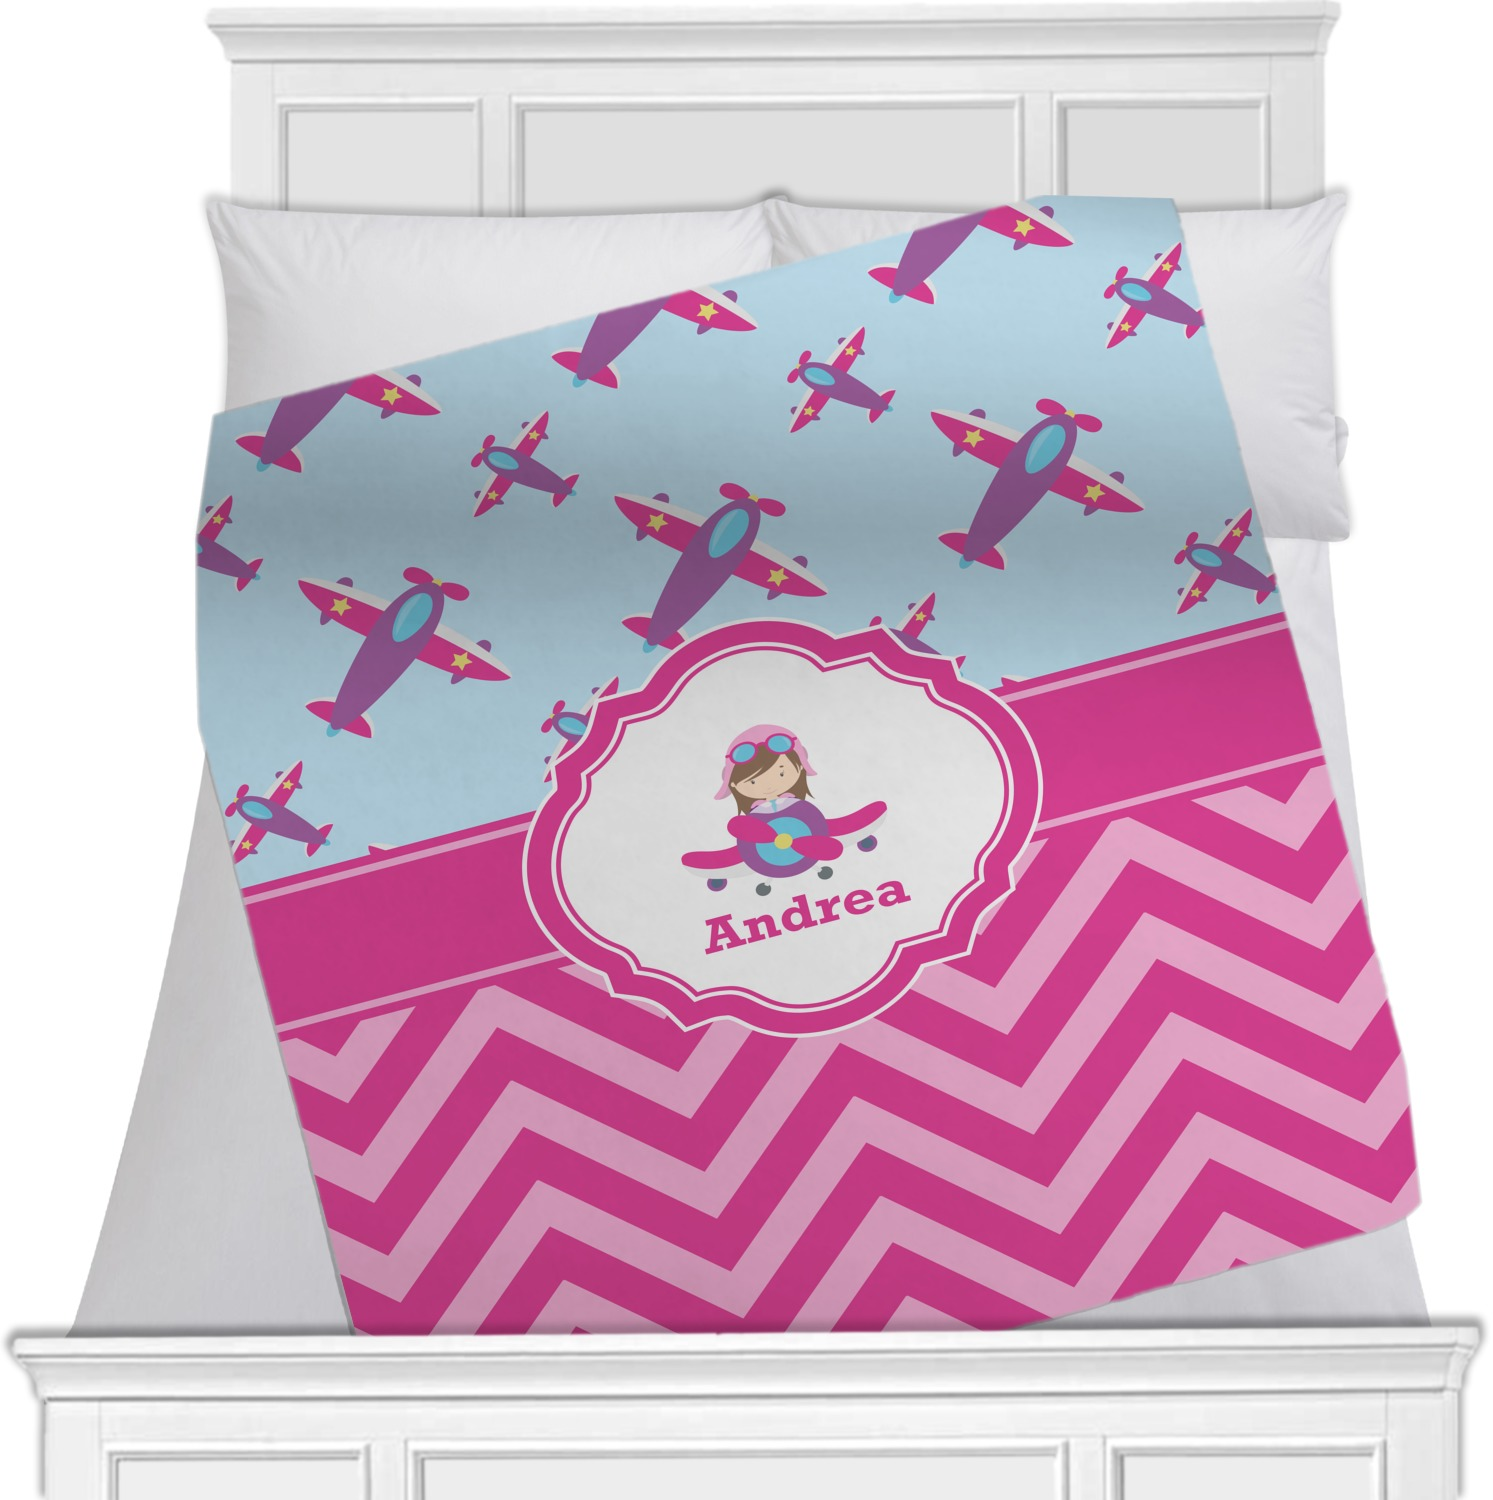 Our popular personalized baby blankets for girls feature baby's name and monogram with pretty graphics like flowers, bows, tiaras, owls, mermaids and more. Add a matching hat or headband to complete the look!